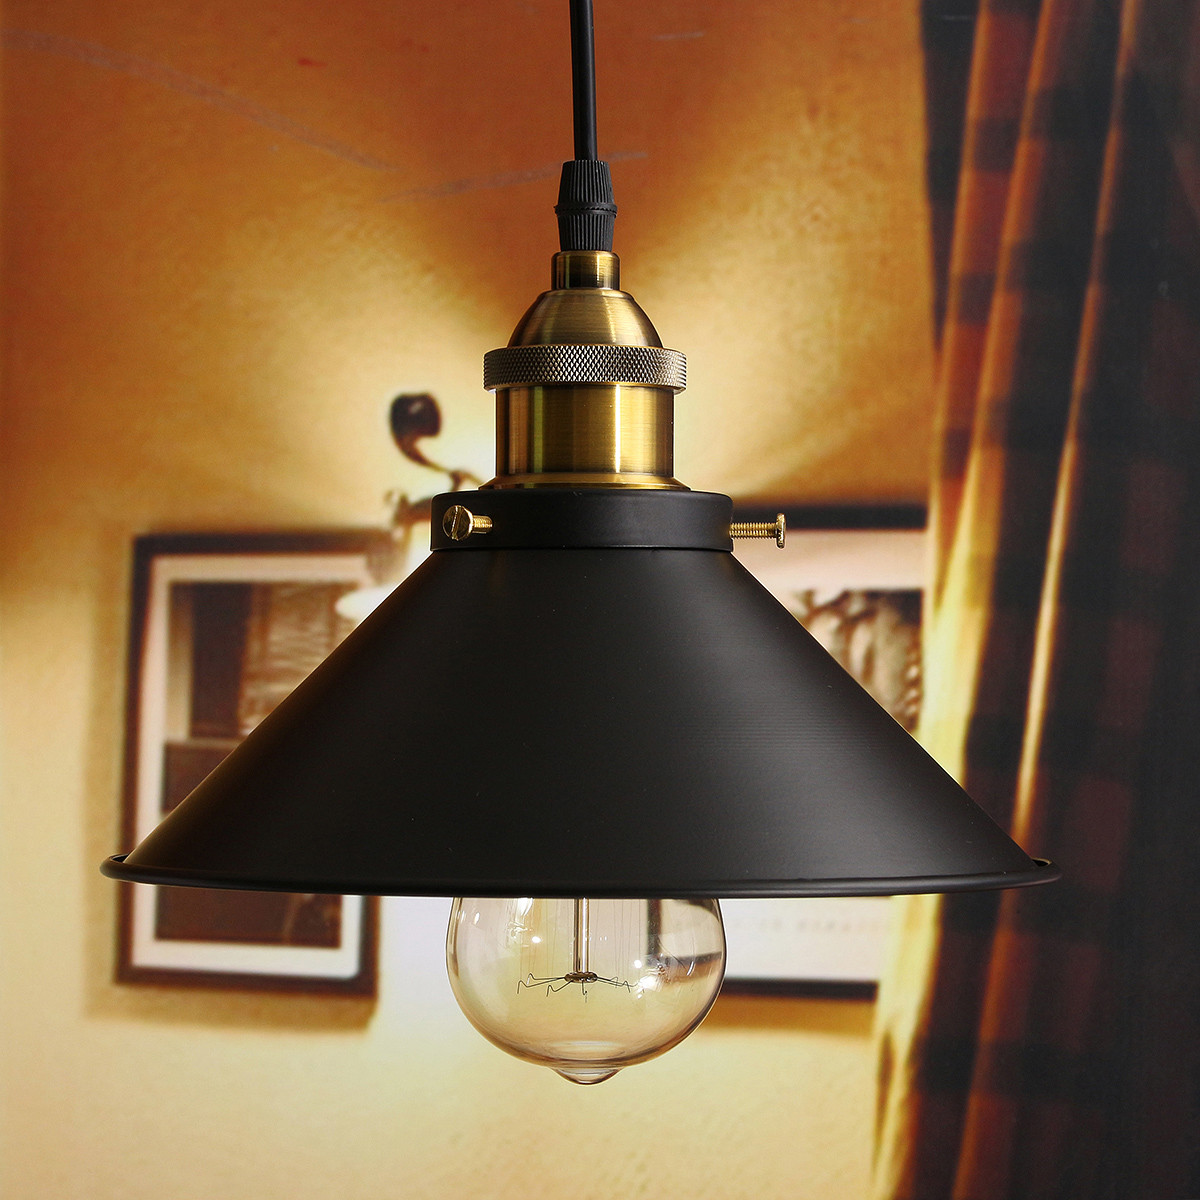 Lighting Fixtures For Home: Vintage Industrial Pendant Retro Loft Home Ceiling Light